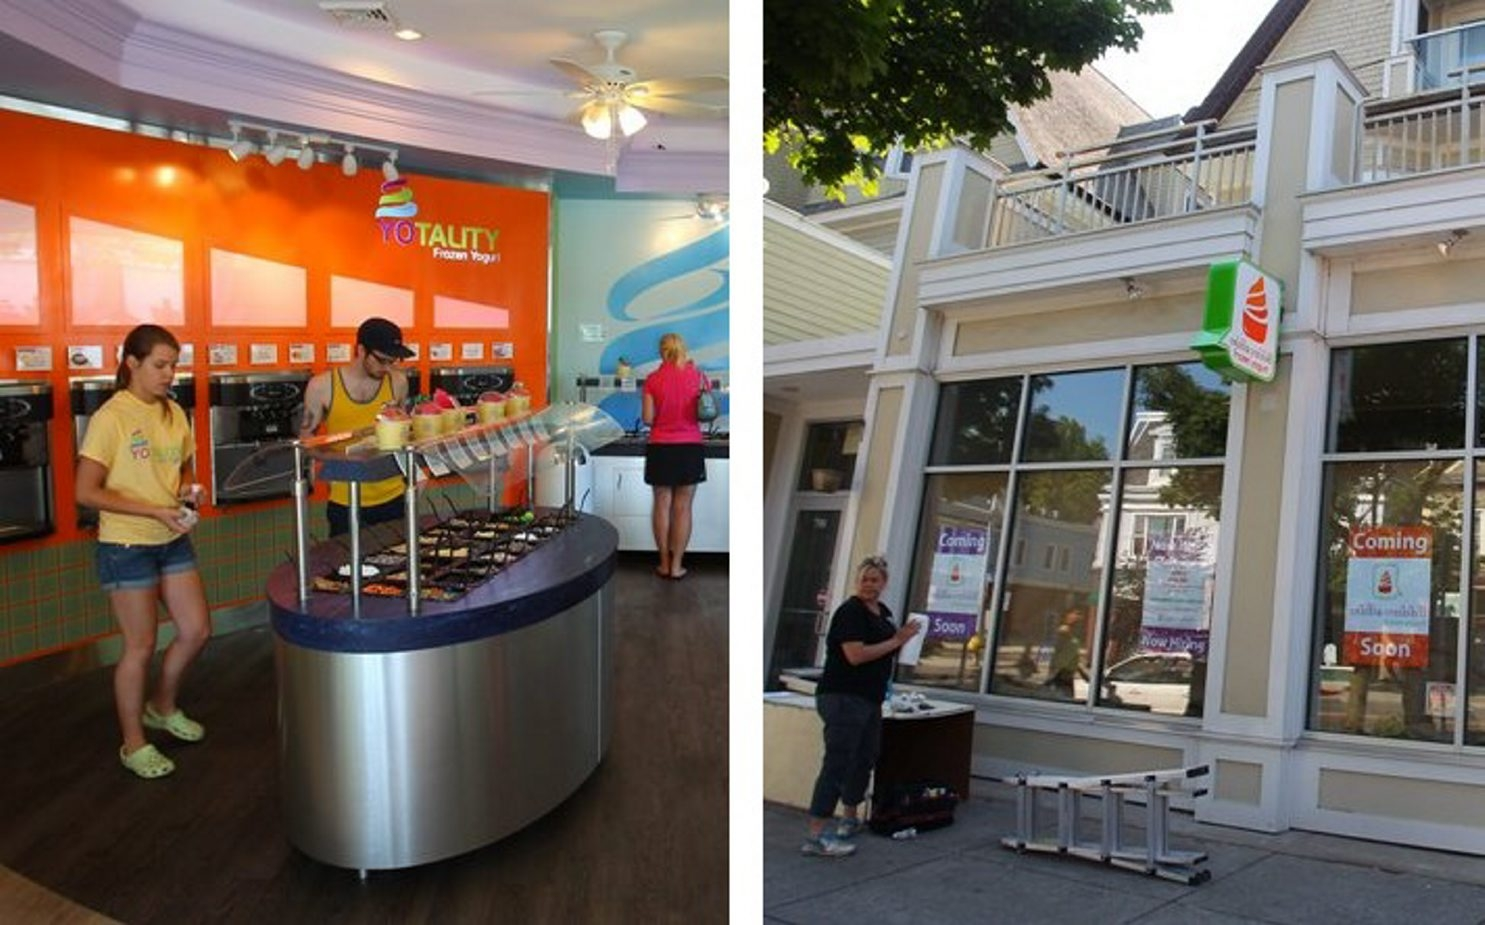 Customers are dazzled by the 25 flavors and supersaturated decor at Yotality, left. Although Andy Kandola, owner of White Rabbit, right, didn't know he would be competing so closely, he's confident he can offer customers a wonderland of taste.